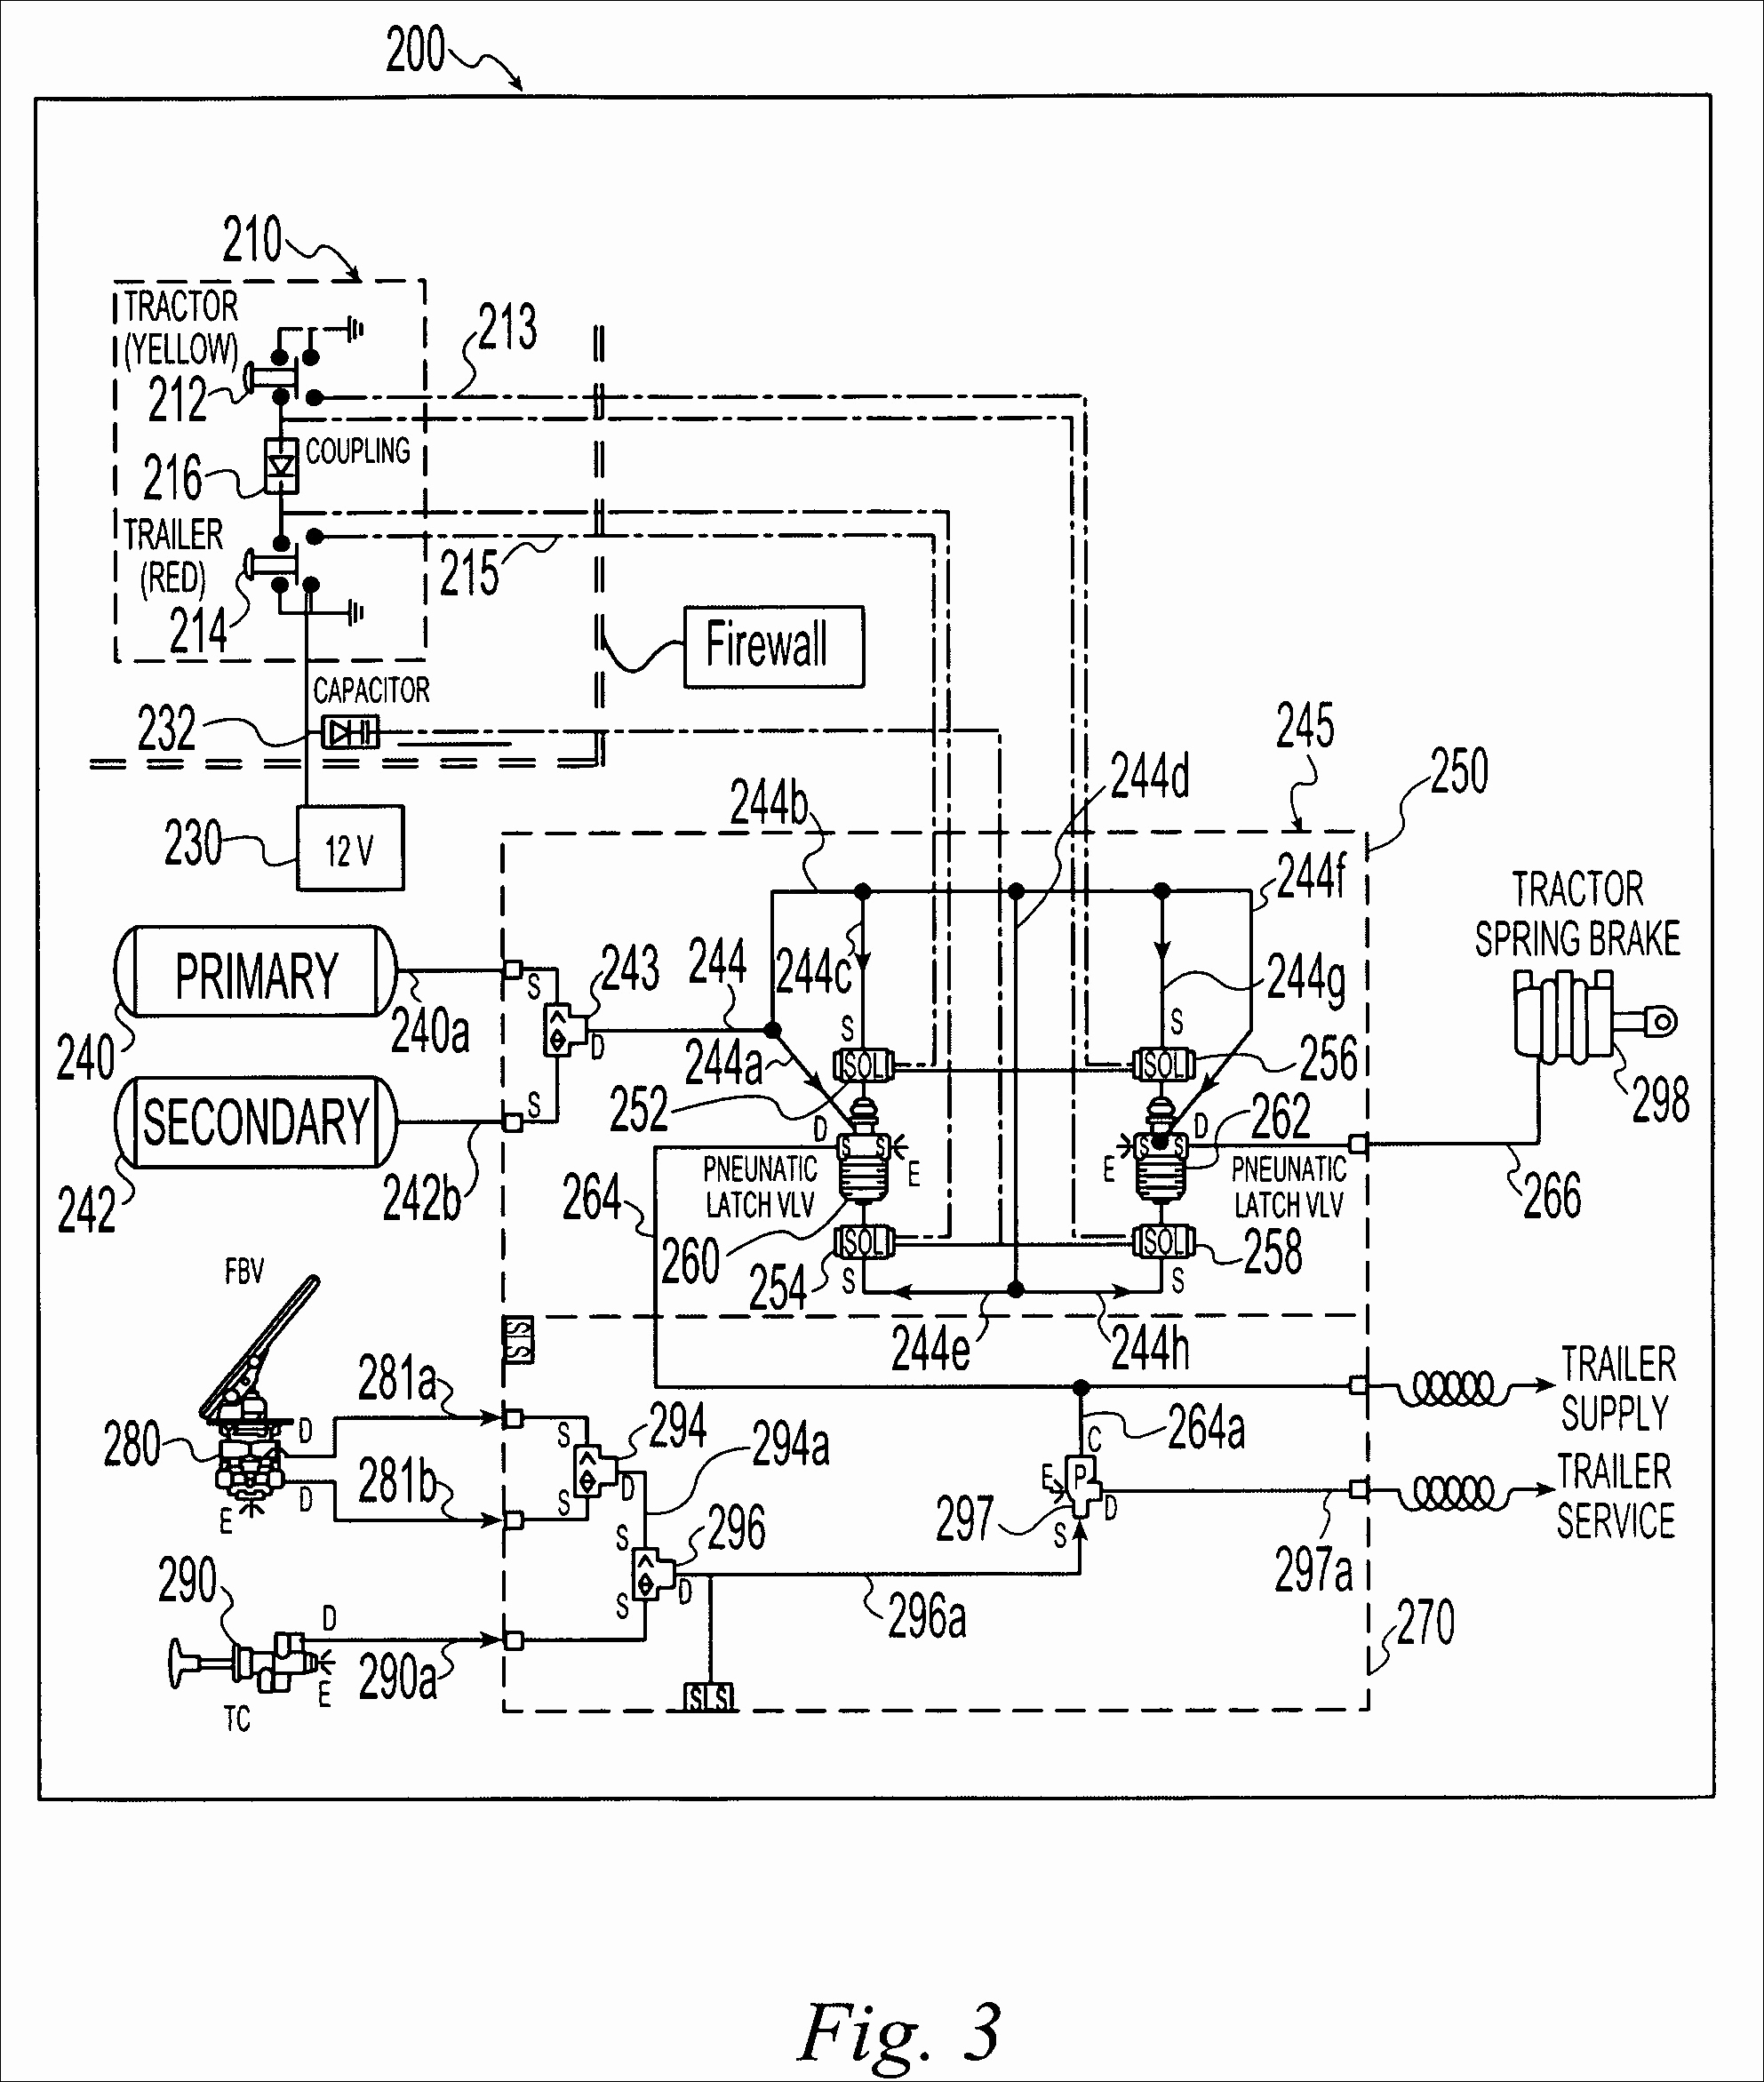 Chevy Silverado Trailer Wiring Diagram Gallery